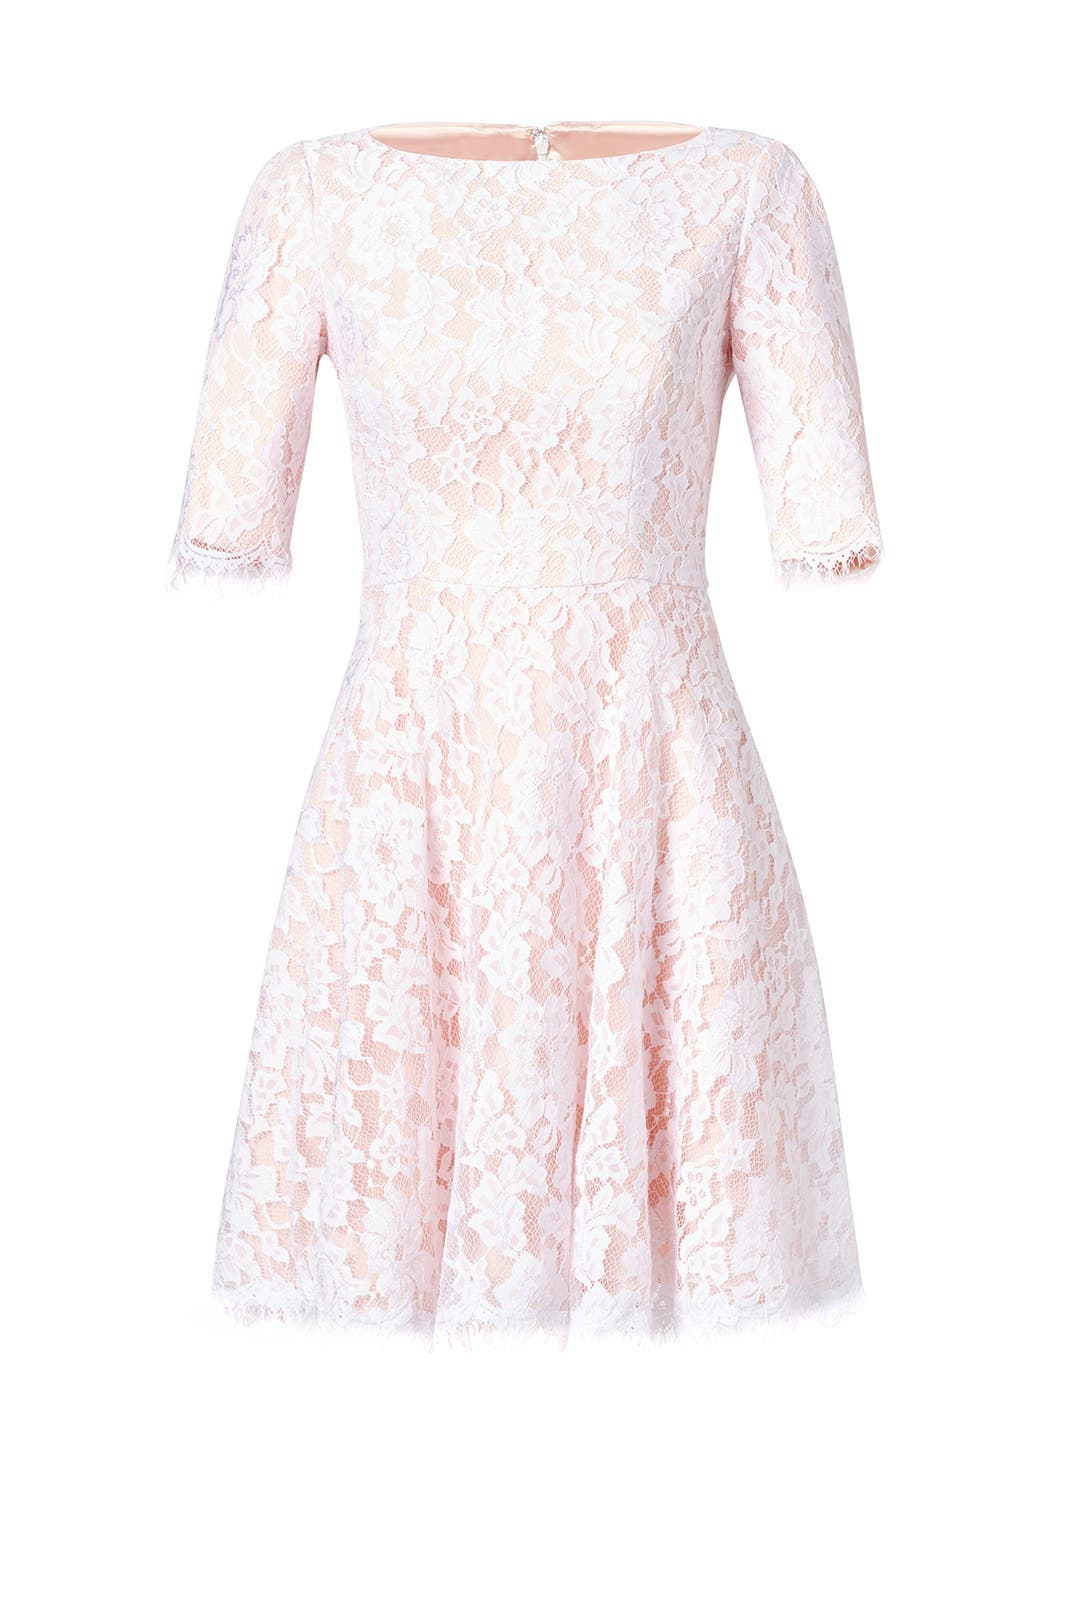 Blushing Envy Dress by ML Monique Lhuillier for $35 - $50 | Rent the ...